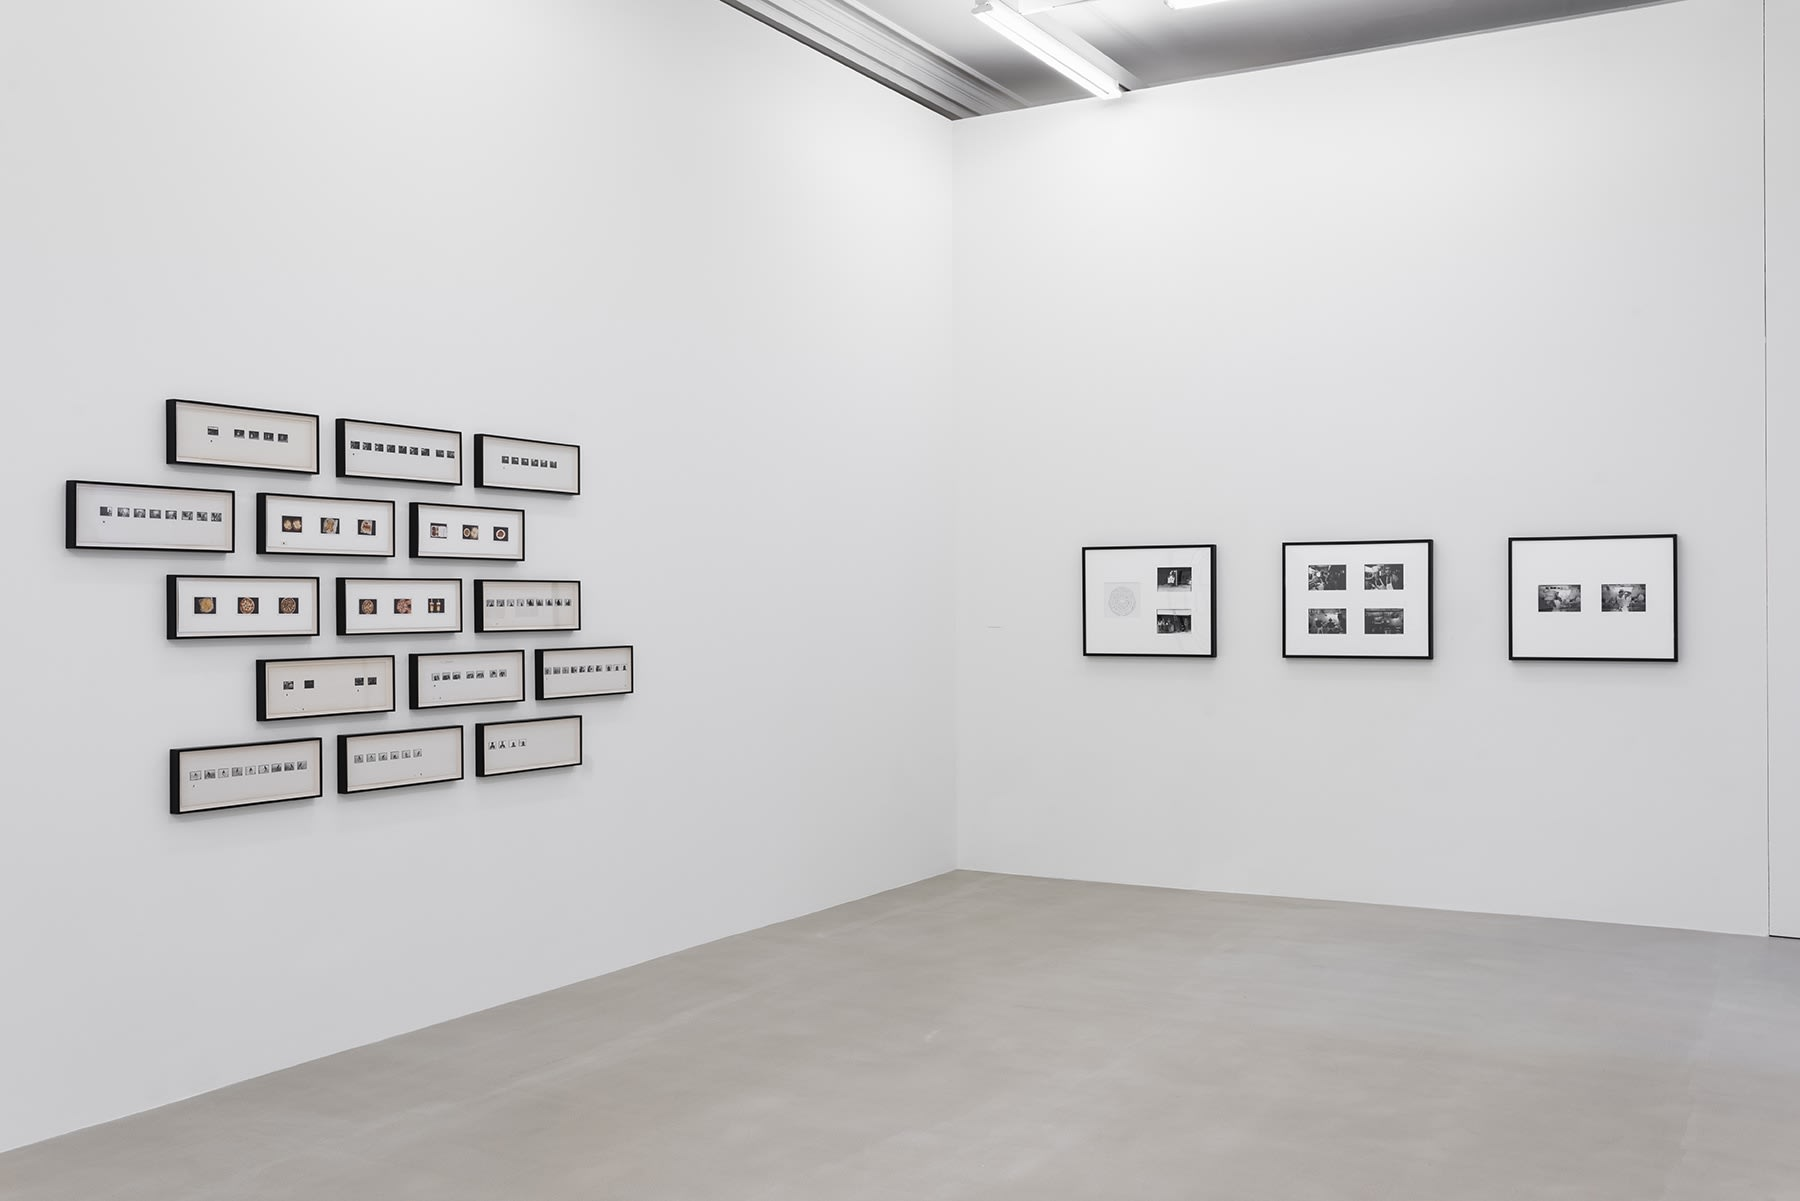 15 narrow frames holding small photographs hang three-by-three on one wall, beside one wall of large rectangular framed black and white photographs.